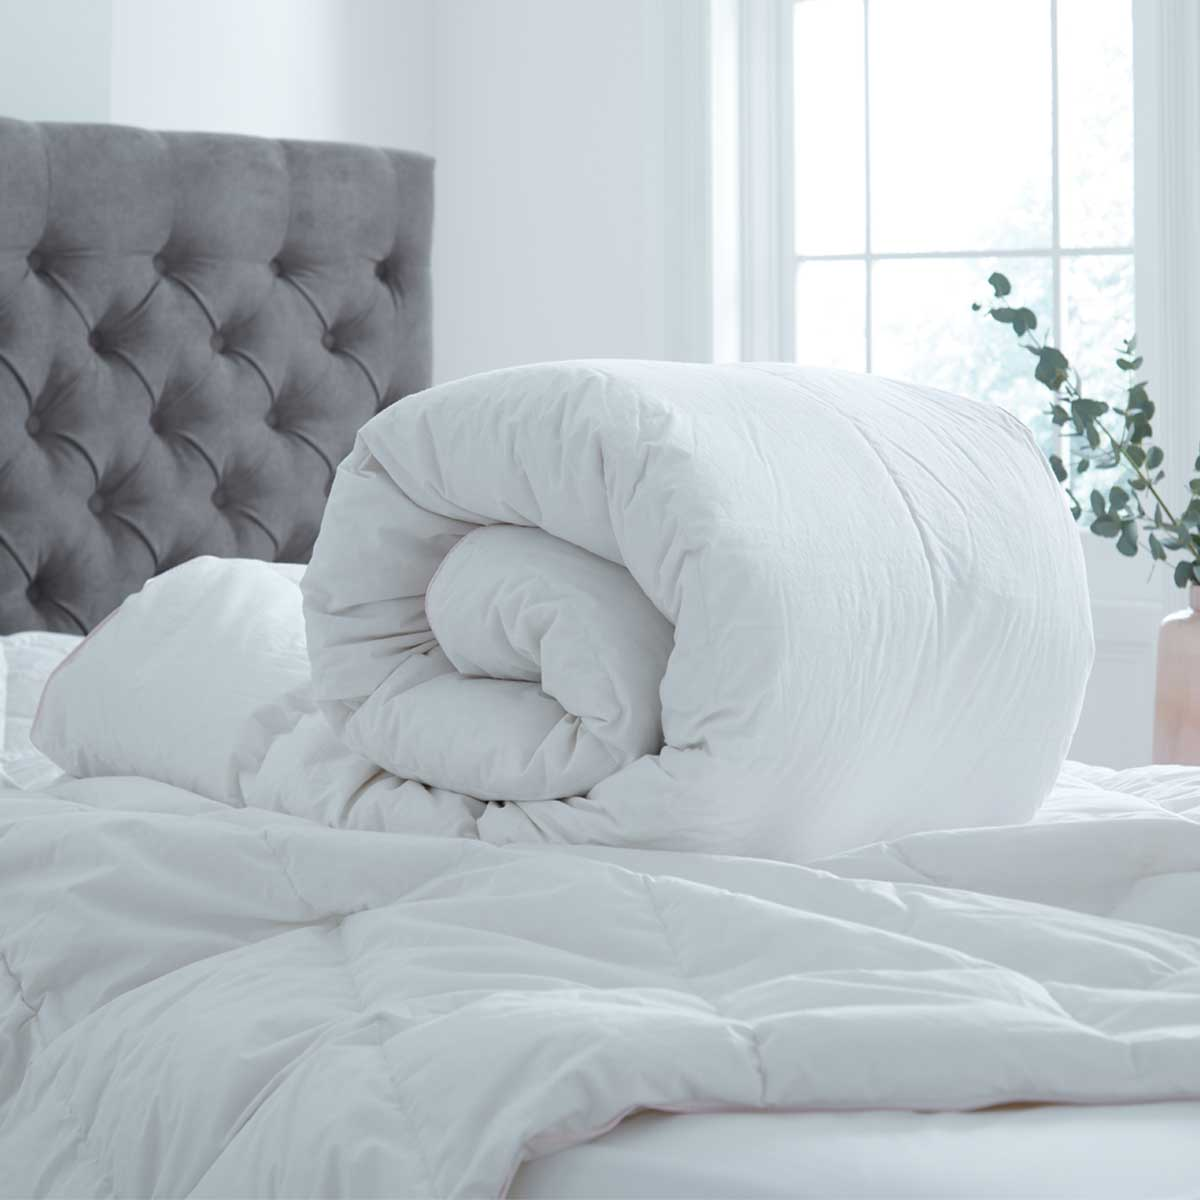 How To Stay Warm In Bed At Winter - DUSK